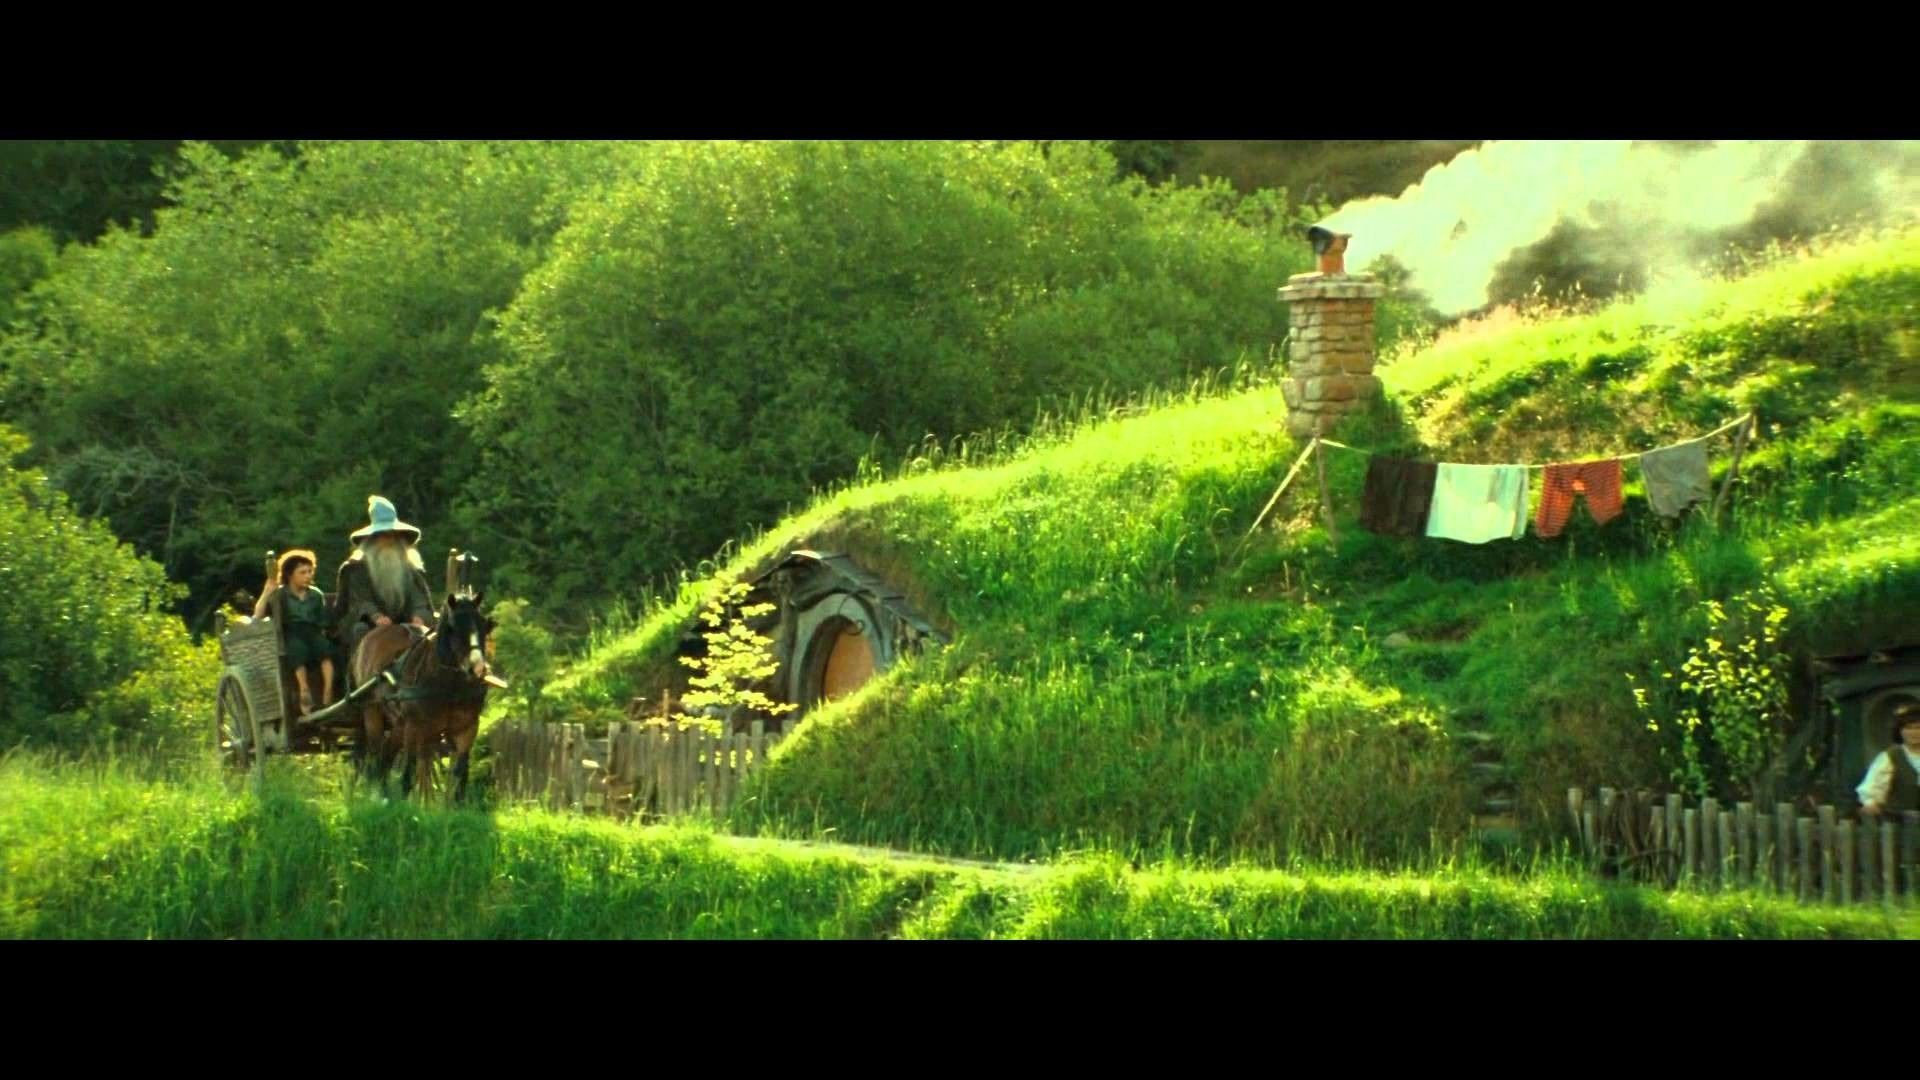 1920x1080 52+ Hobbiton Wallpapers on WallpaperPlay